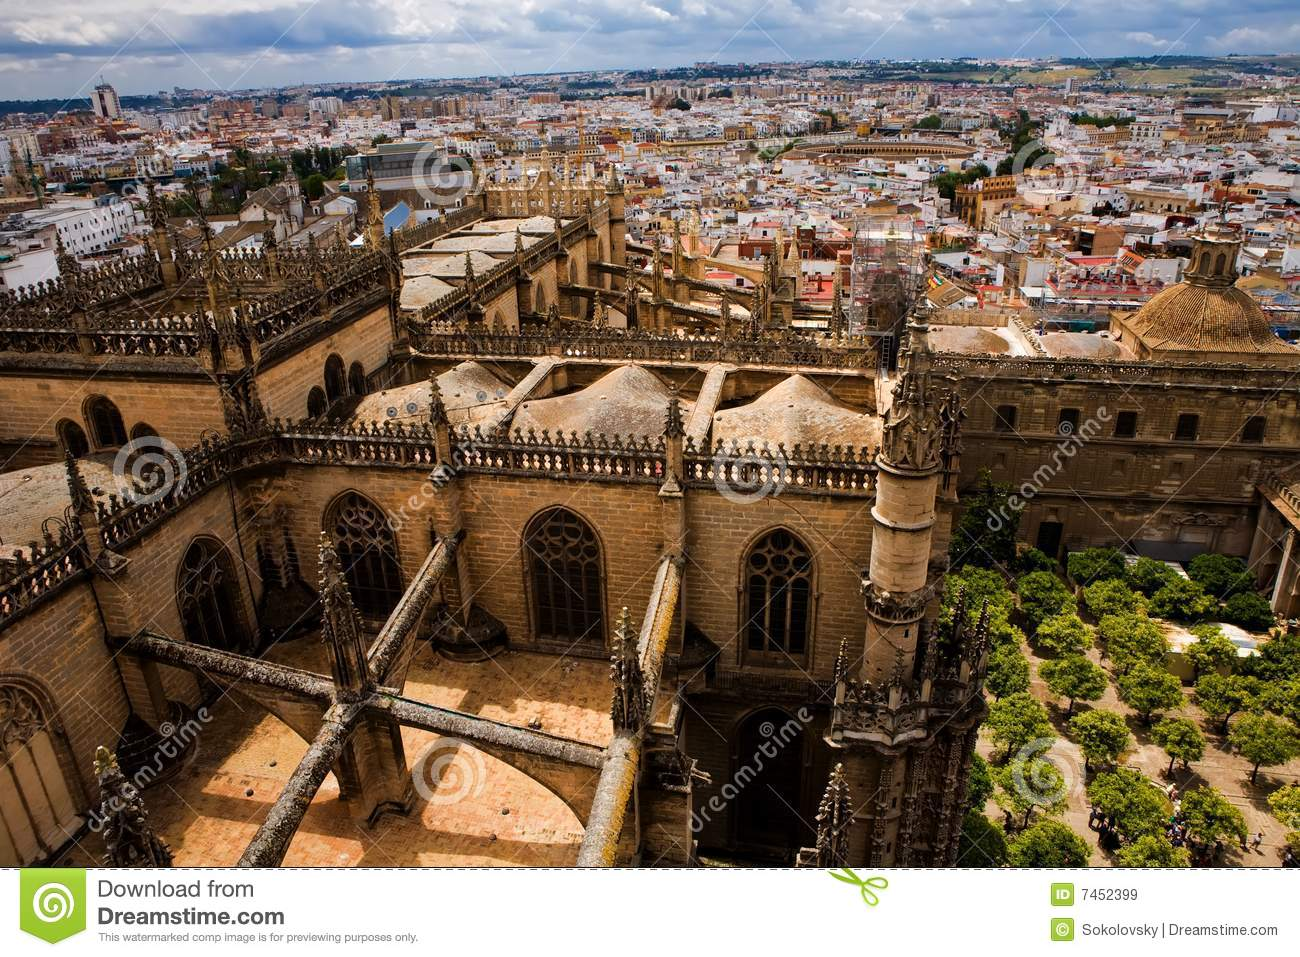 View from La Giralda tower of Seville Cathedral